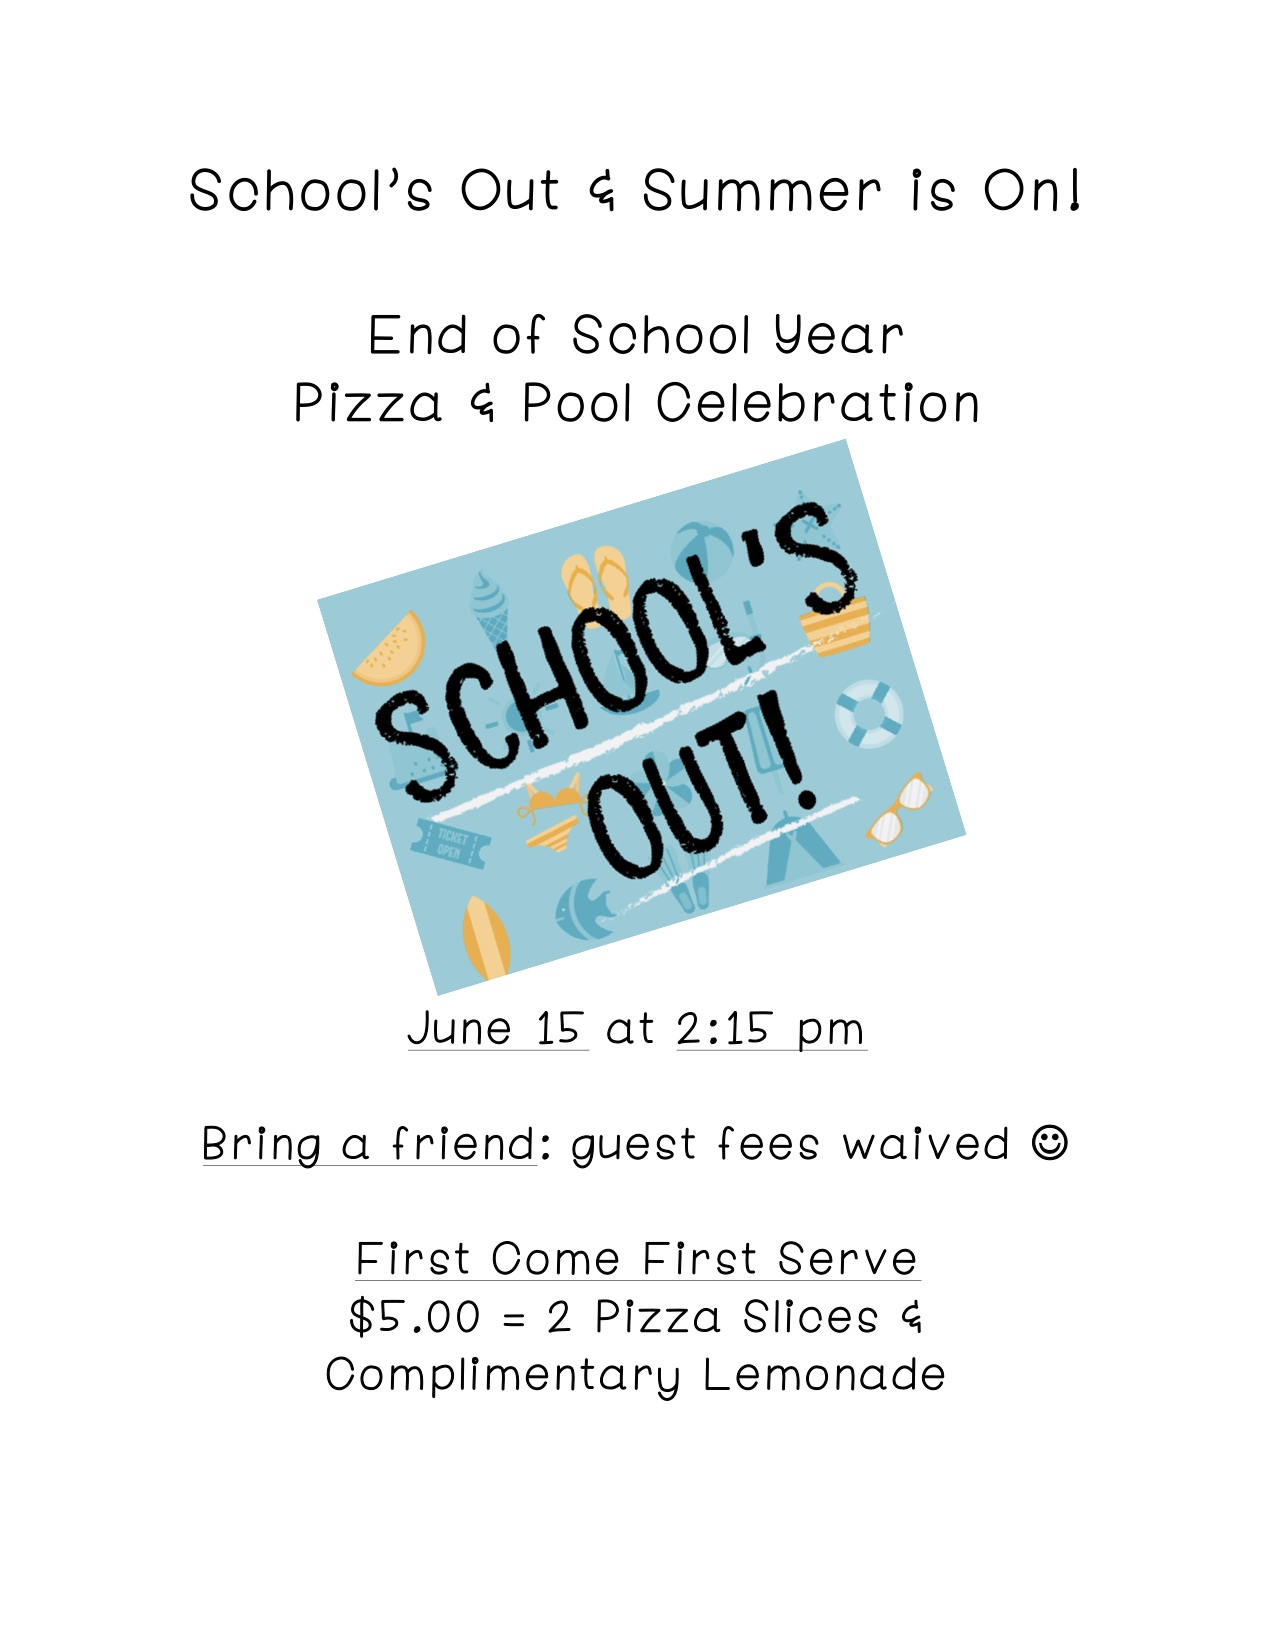 School's Out CSC Flyer 6_15.jpg